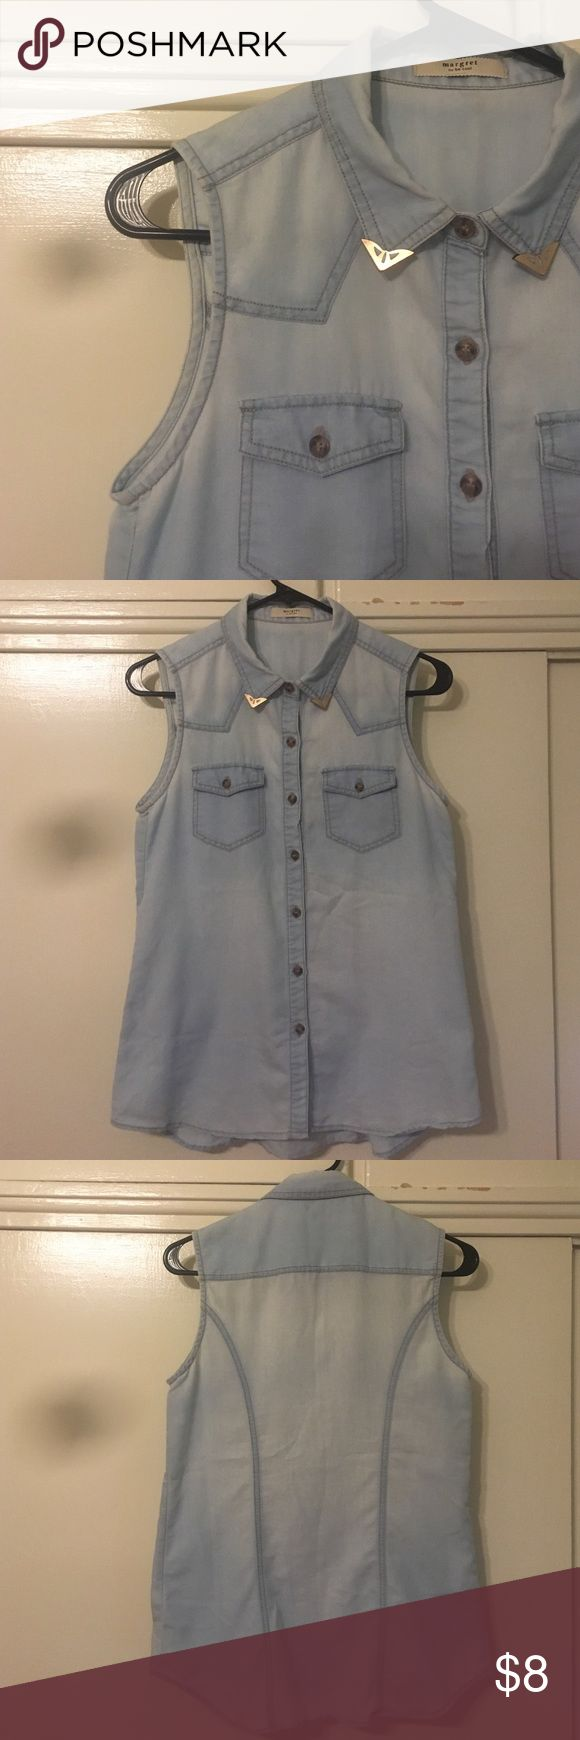 Sleeveless Denim Shirt Light blue, sleeveless, denim shirt with gold plated corners on tips of collar. Otherwise, fairly basic. Worn in but still looks pretty good, especially when layered! Tops